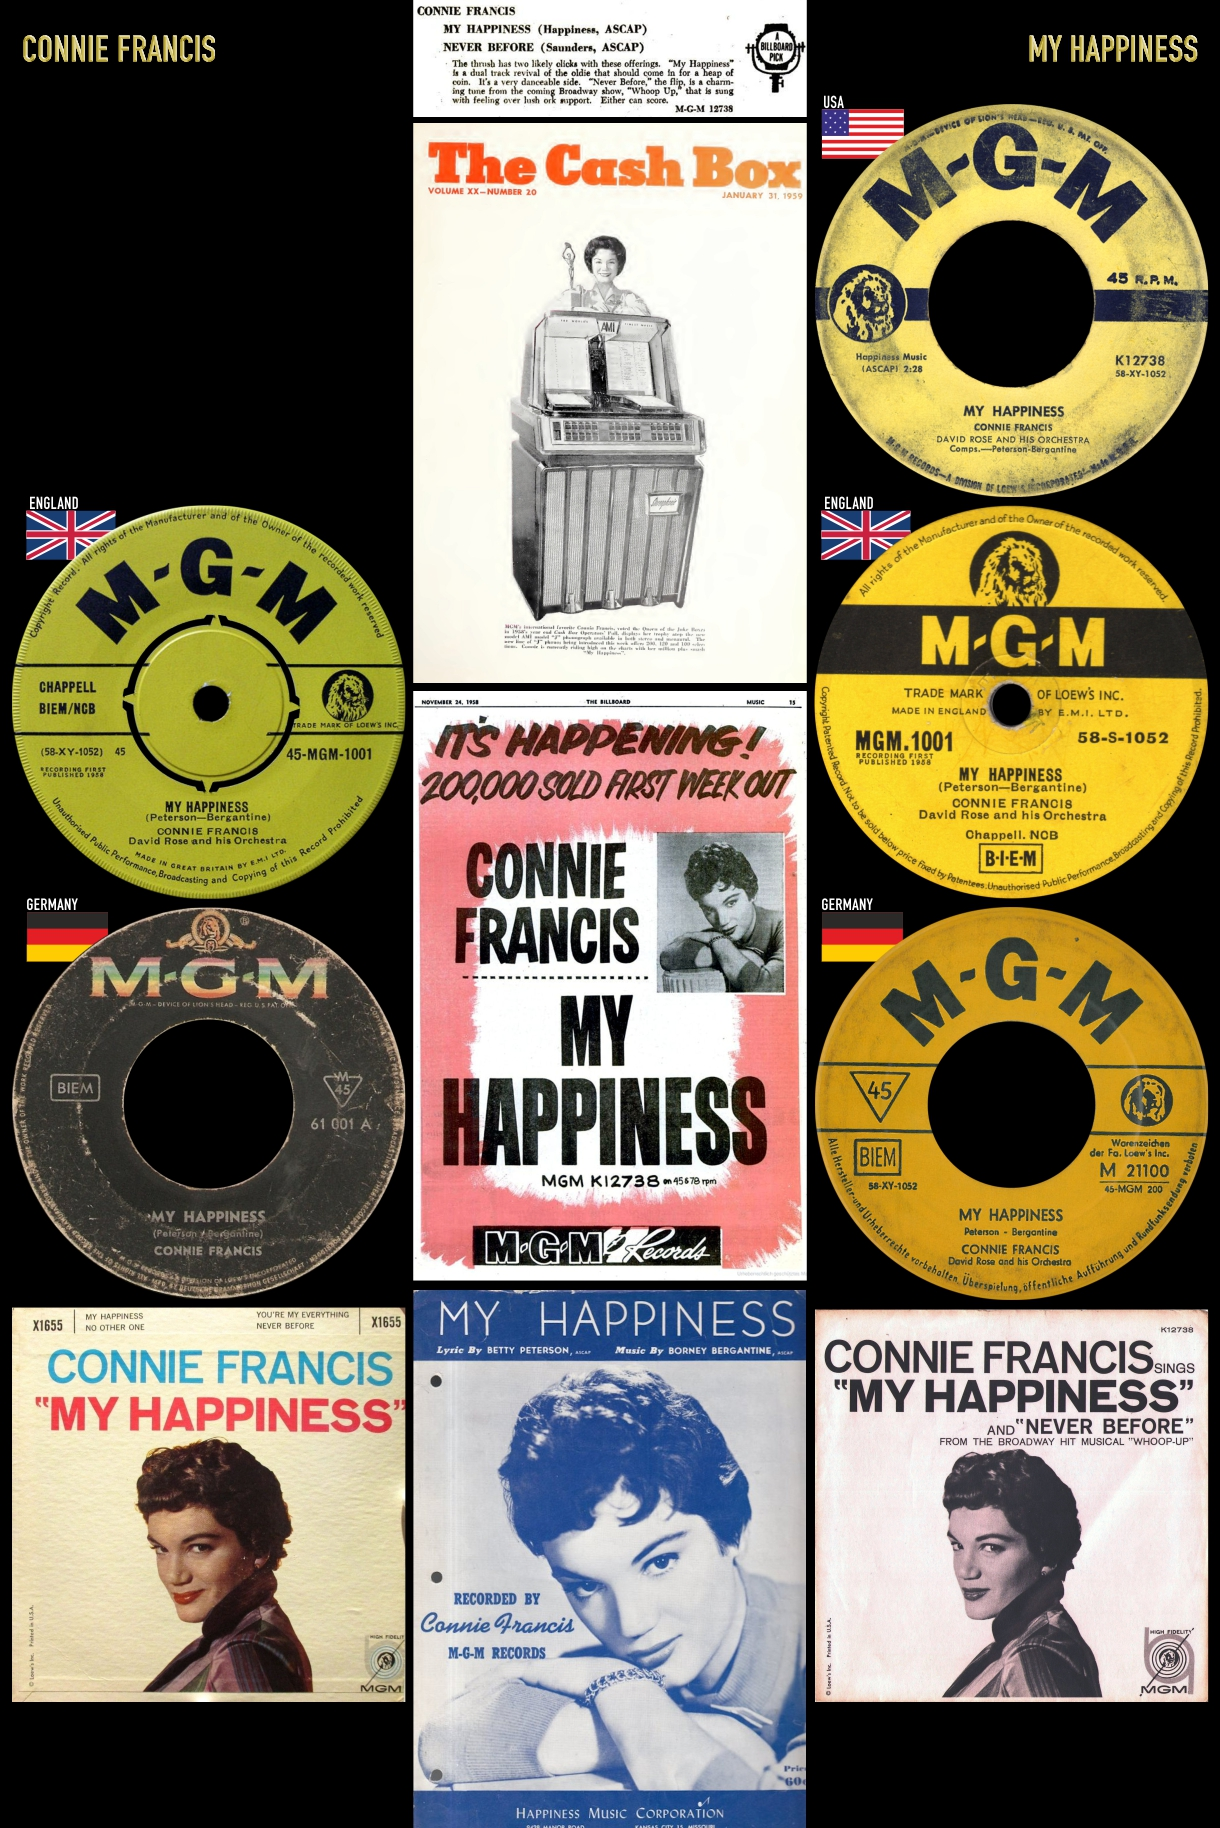 581206_Connie Francis_My Happiness